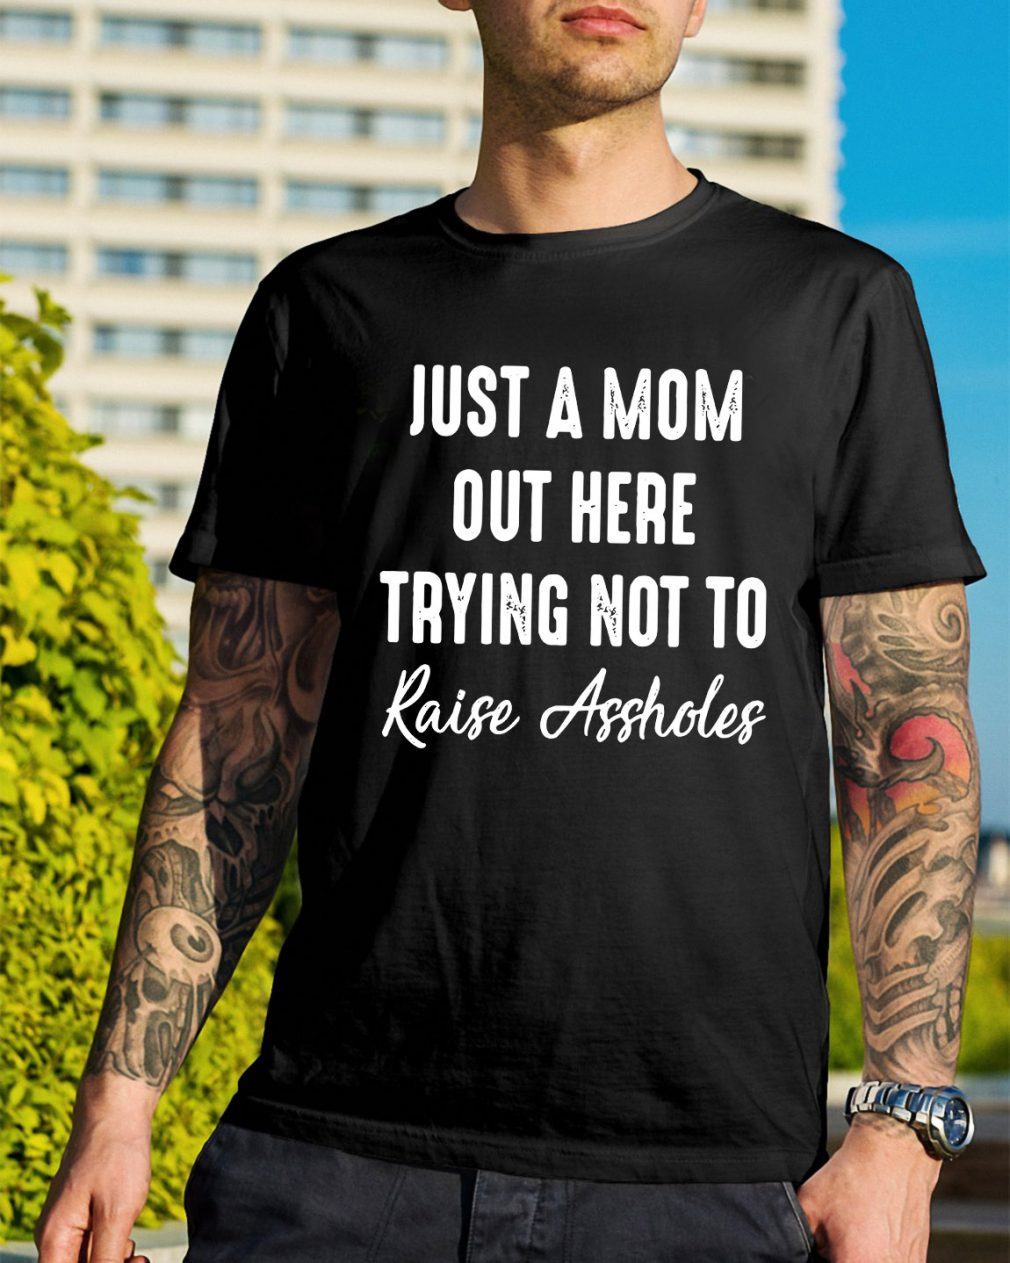 Just a mom out here trying not to raise assholes shirt